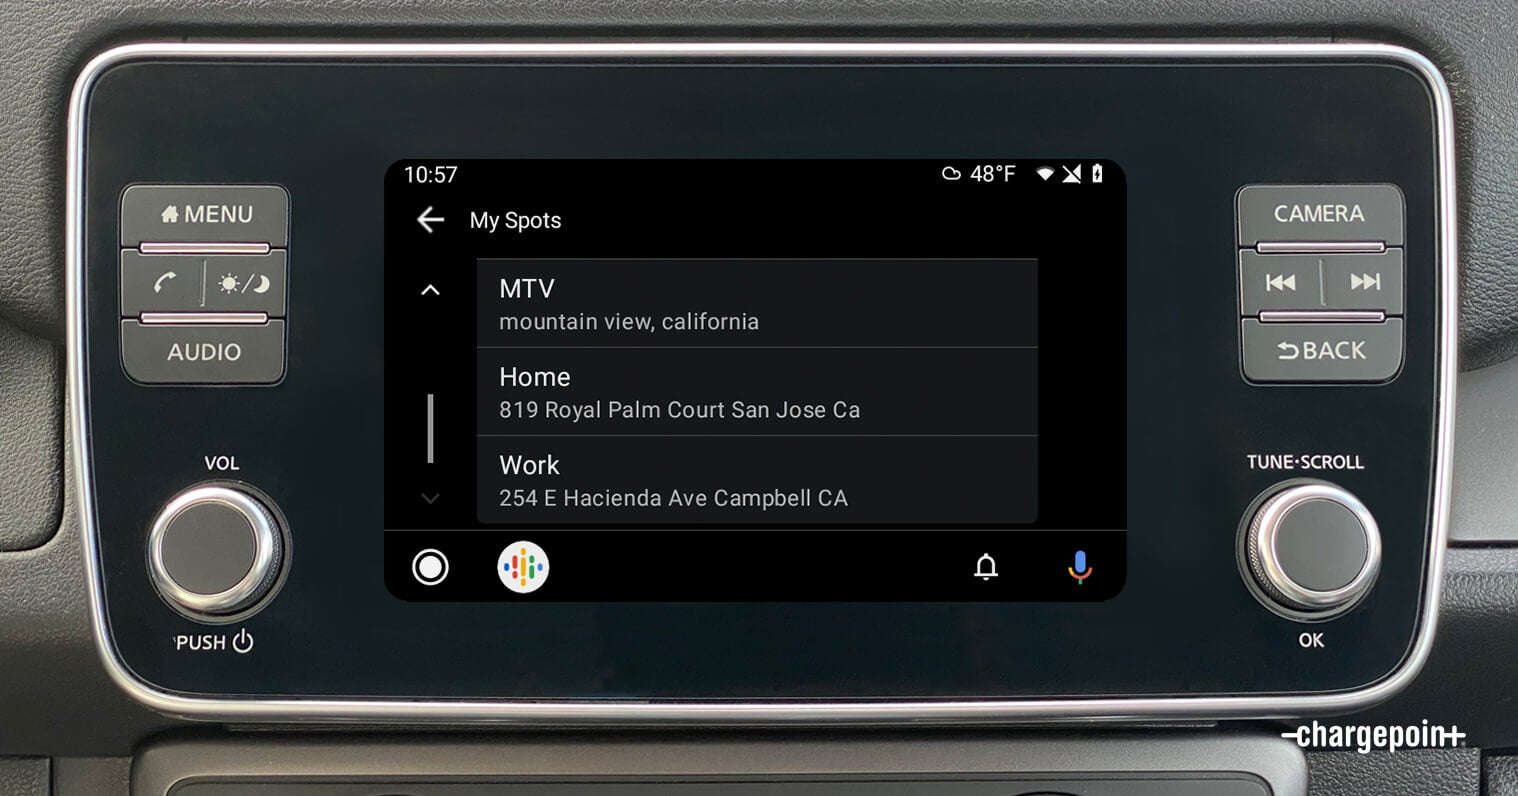 Find your EV charging spots in ChargePoint on Android Auto